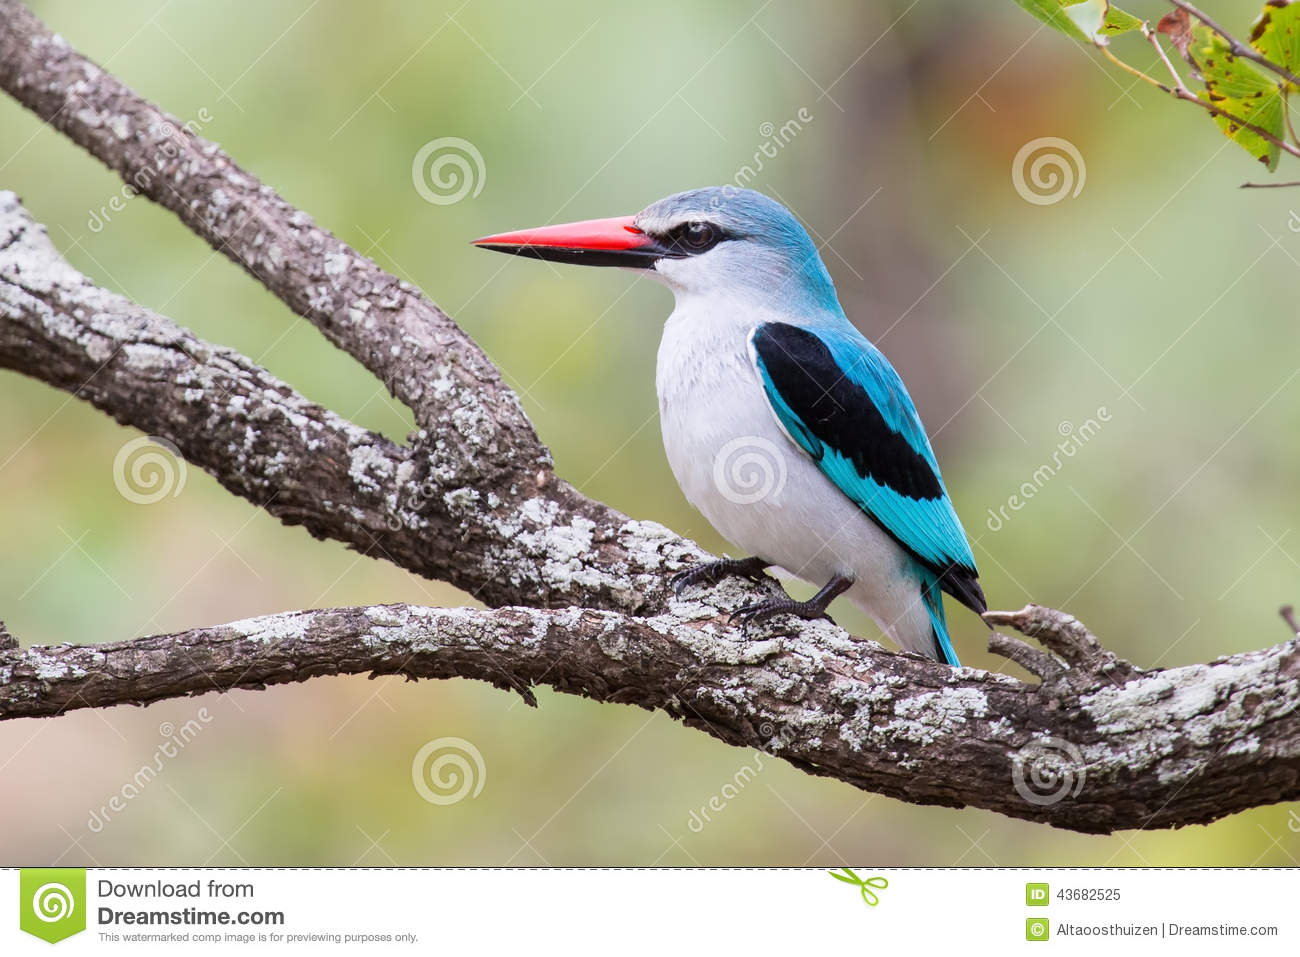 Woodland Kingfisher clipart #7, Download drawings